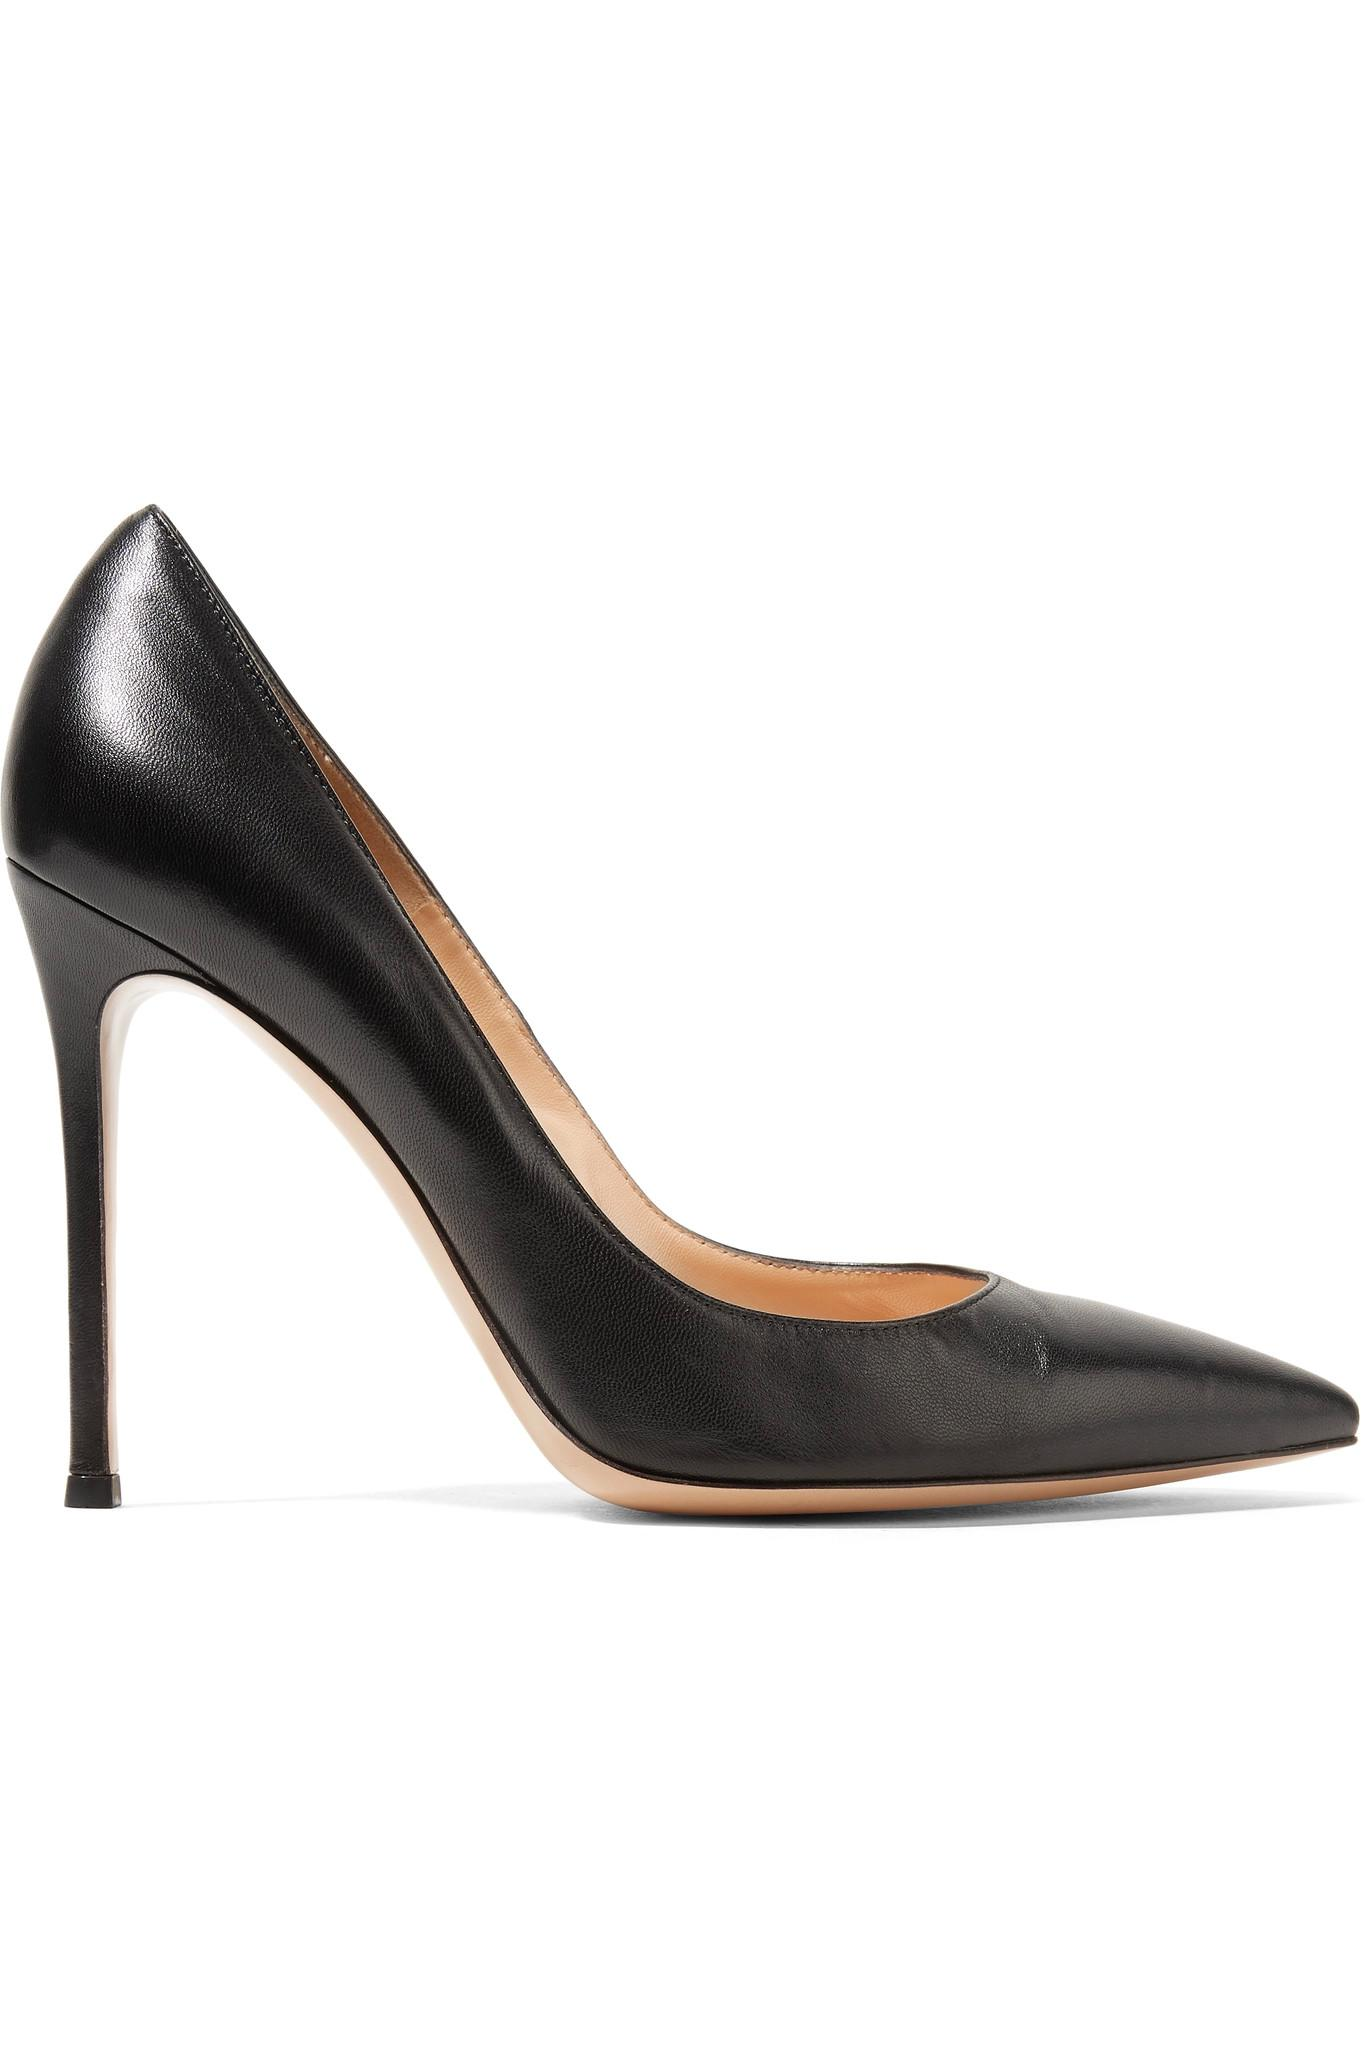 Le Meilleur Gianvito Rossi 105 Leather Court Shoes In Black Save 10 Ce Mois Ci